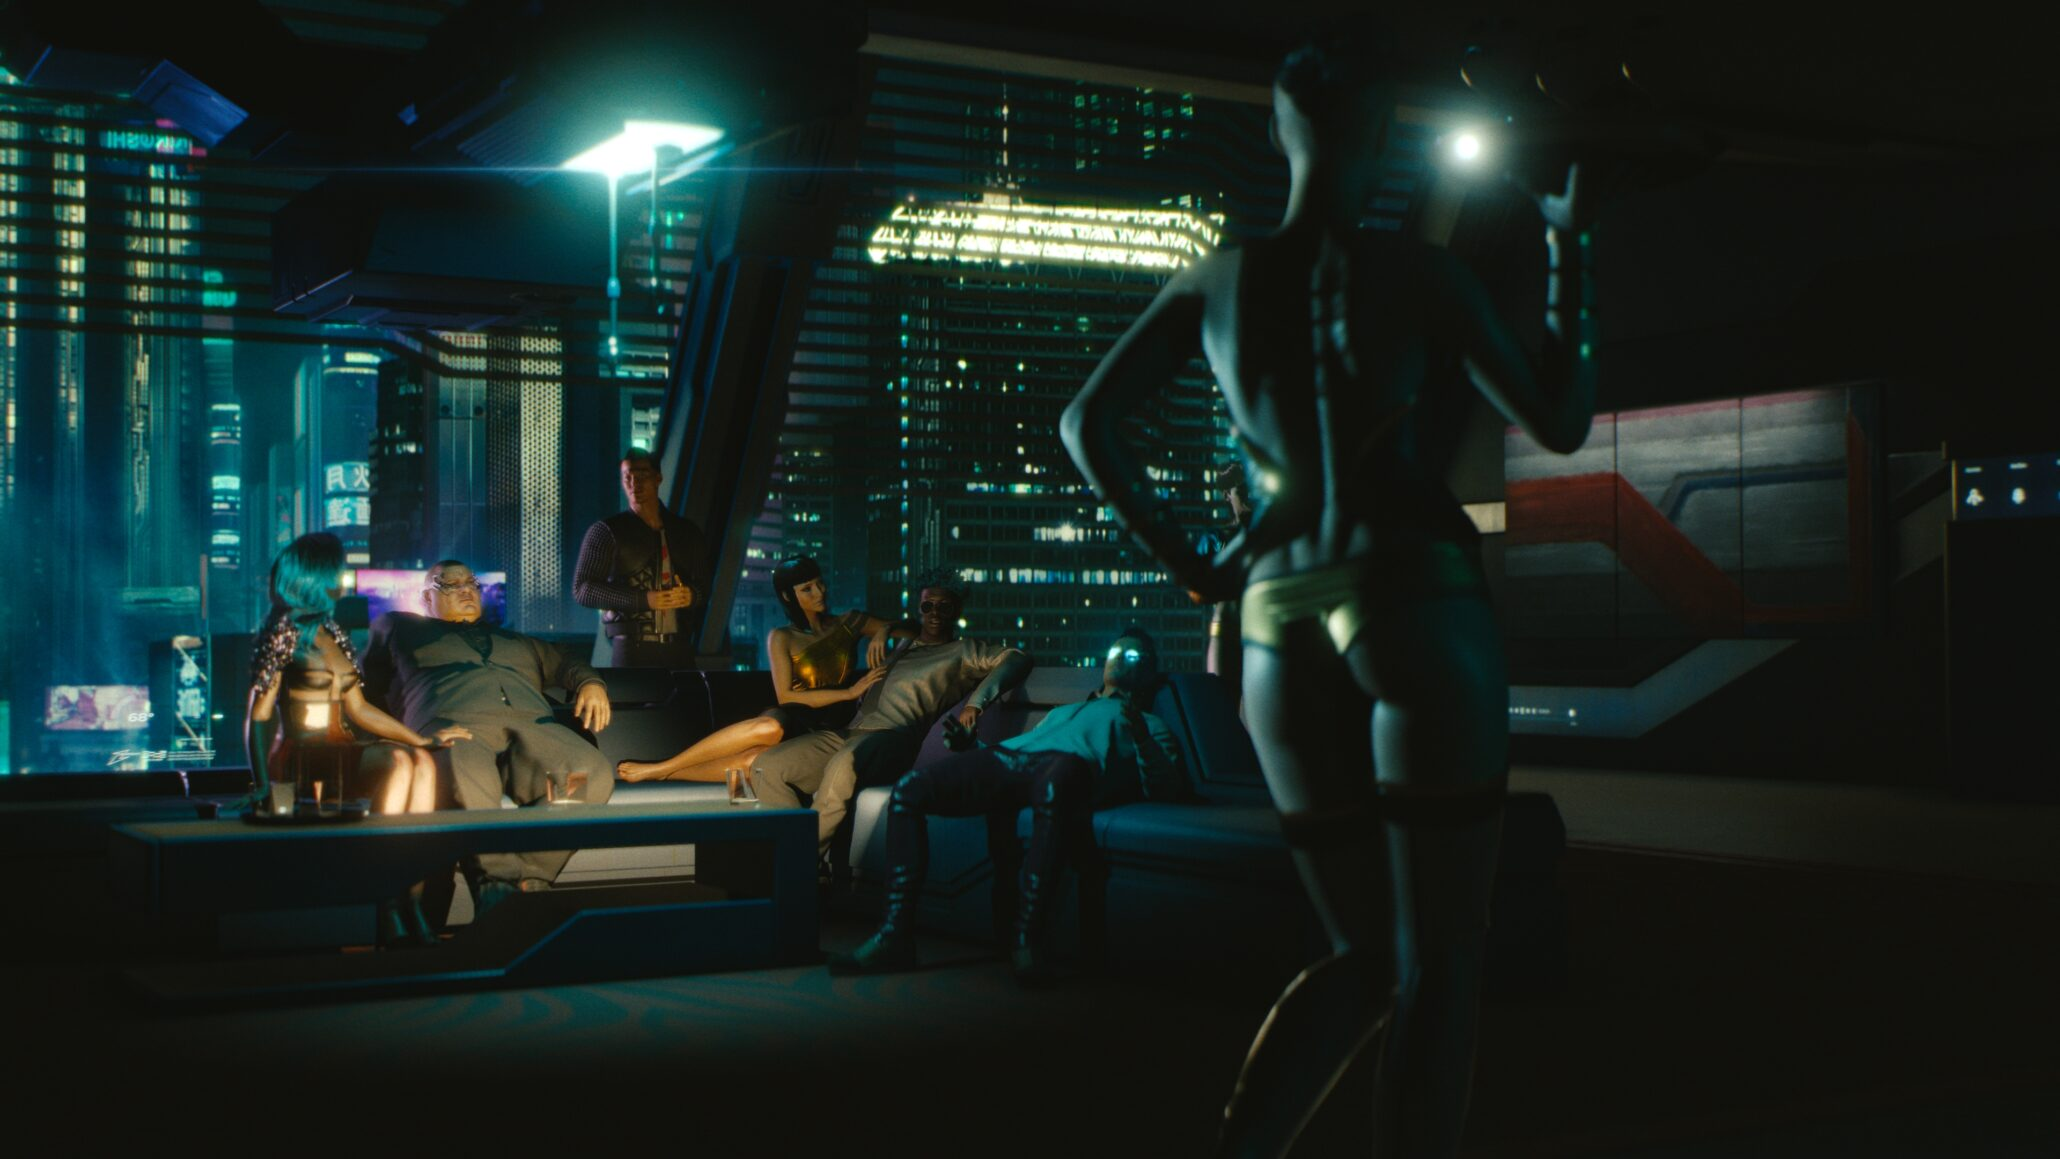 cyberpunk 2077 has multiple purchasable apartments but no